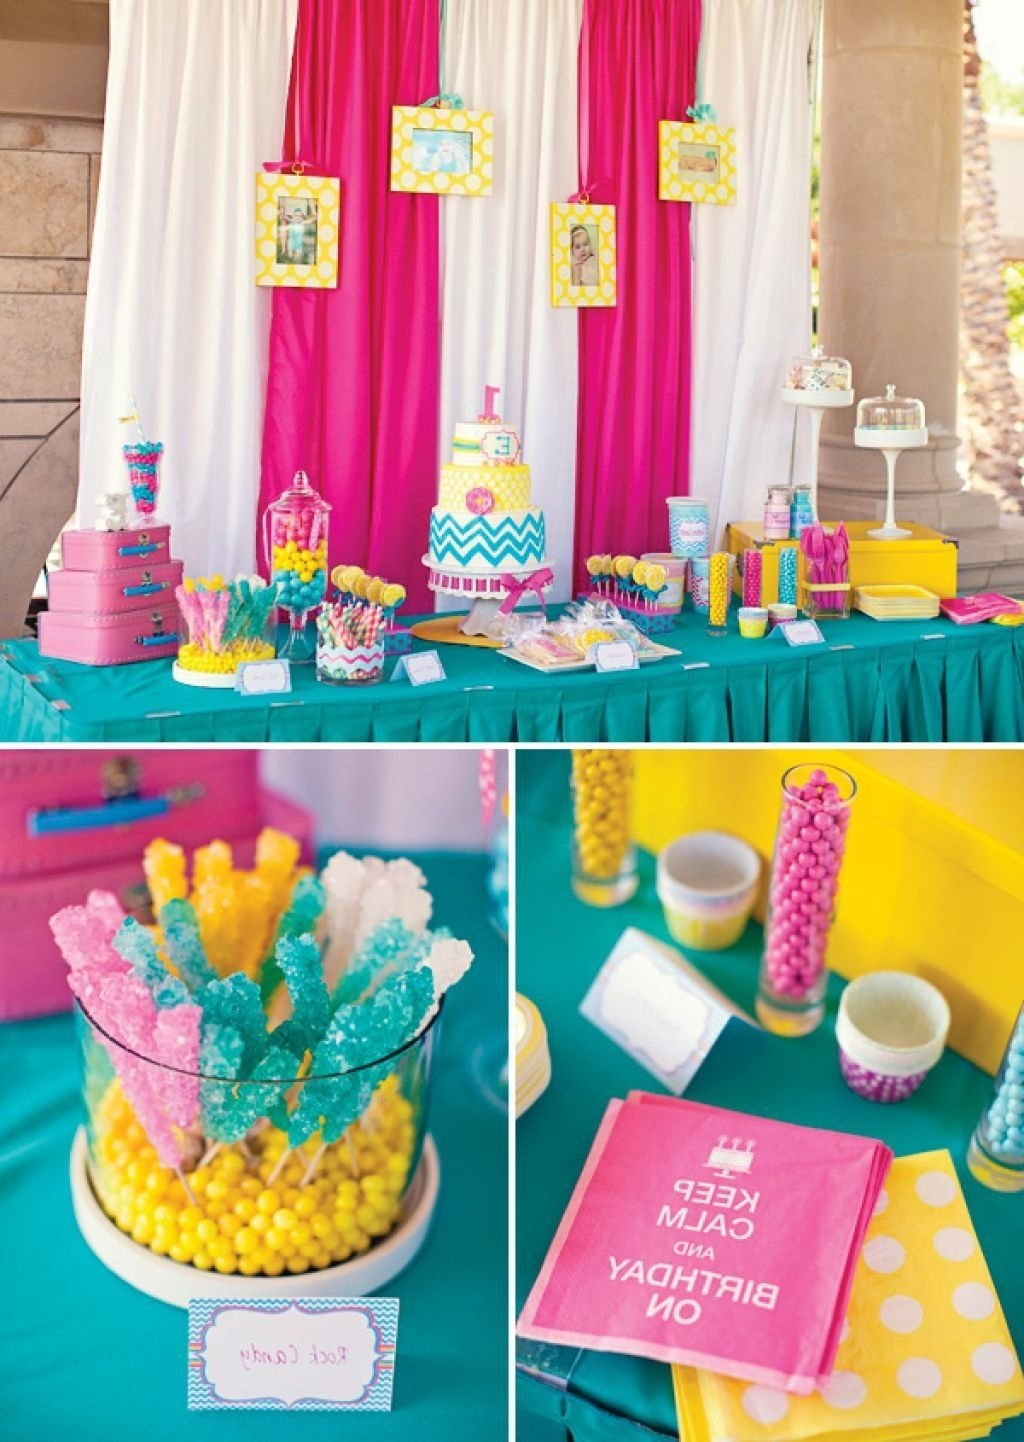 10 Best 6 Yr Old Girl Birthday Party Ideas outdoor party decorations google search madeline pinterest 17 2021